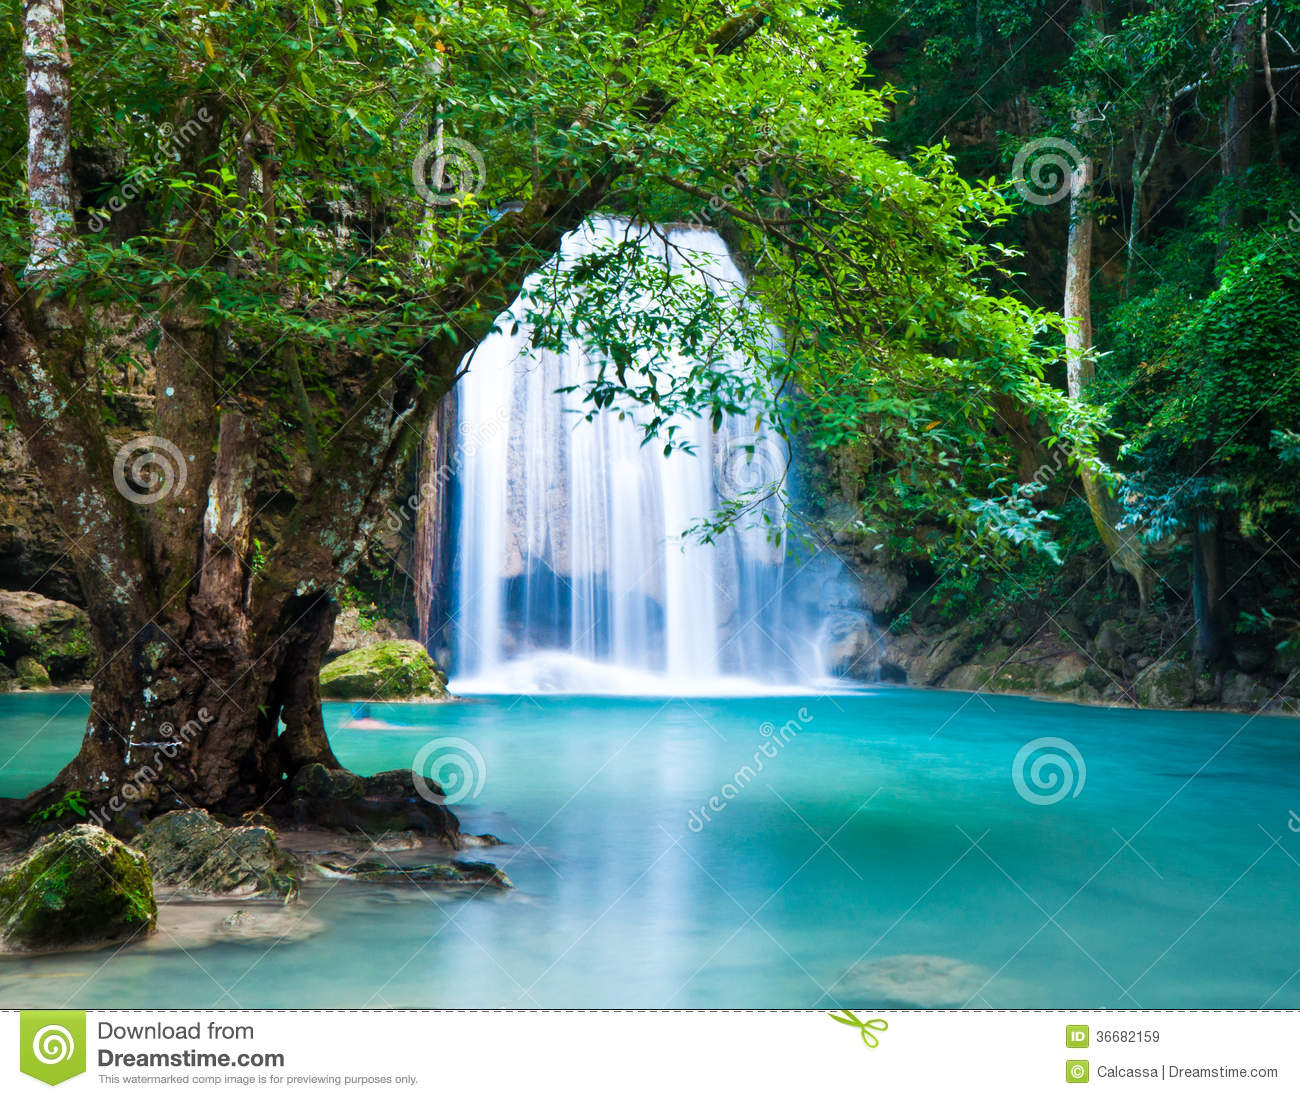 Fall Flowers Desk Background Wallpaper Cliff Of Waterfall In Deep Forest Stock Image Image Of